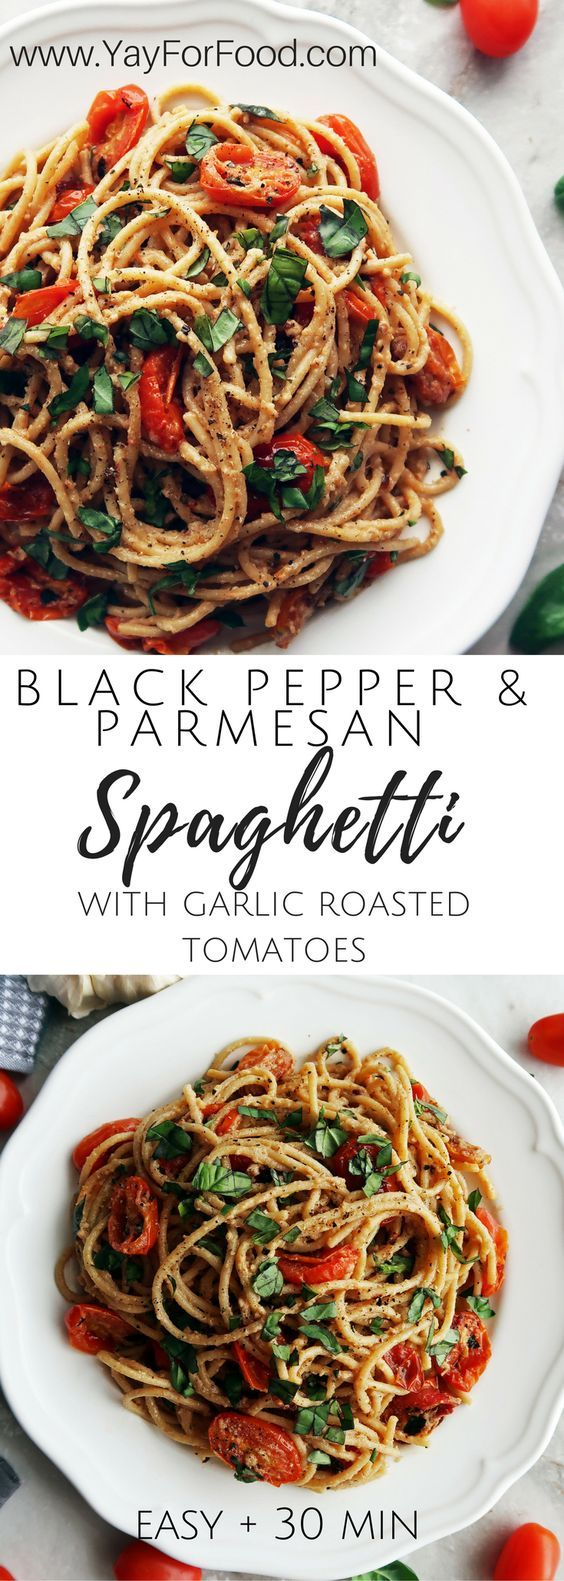 Inspired by Cacio e Pepe (aka cheese and pepper), this delicious pasta dish is complemented with garlic roasted cherry tomatoes and fresh basil. An easy meal option that's ready in 30 minutes! Spaghetti | Vegetarian